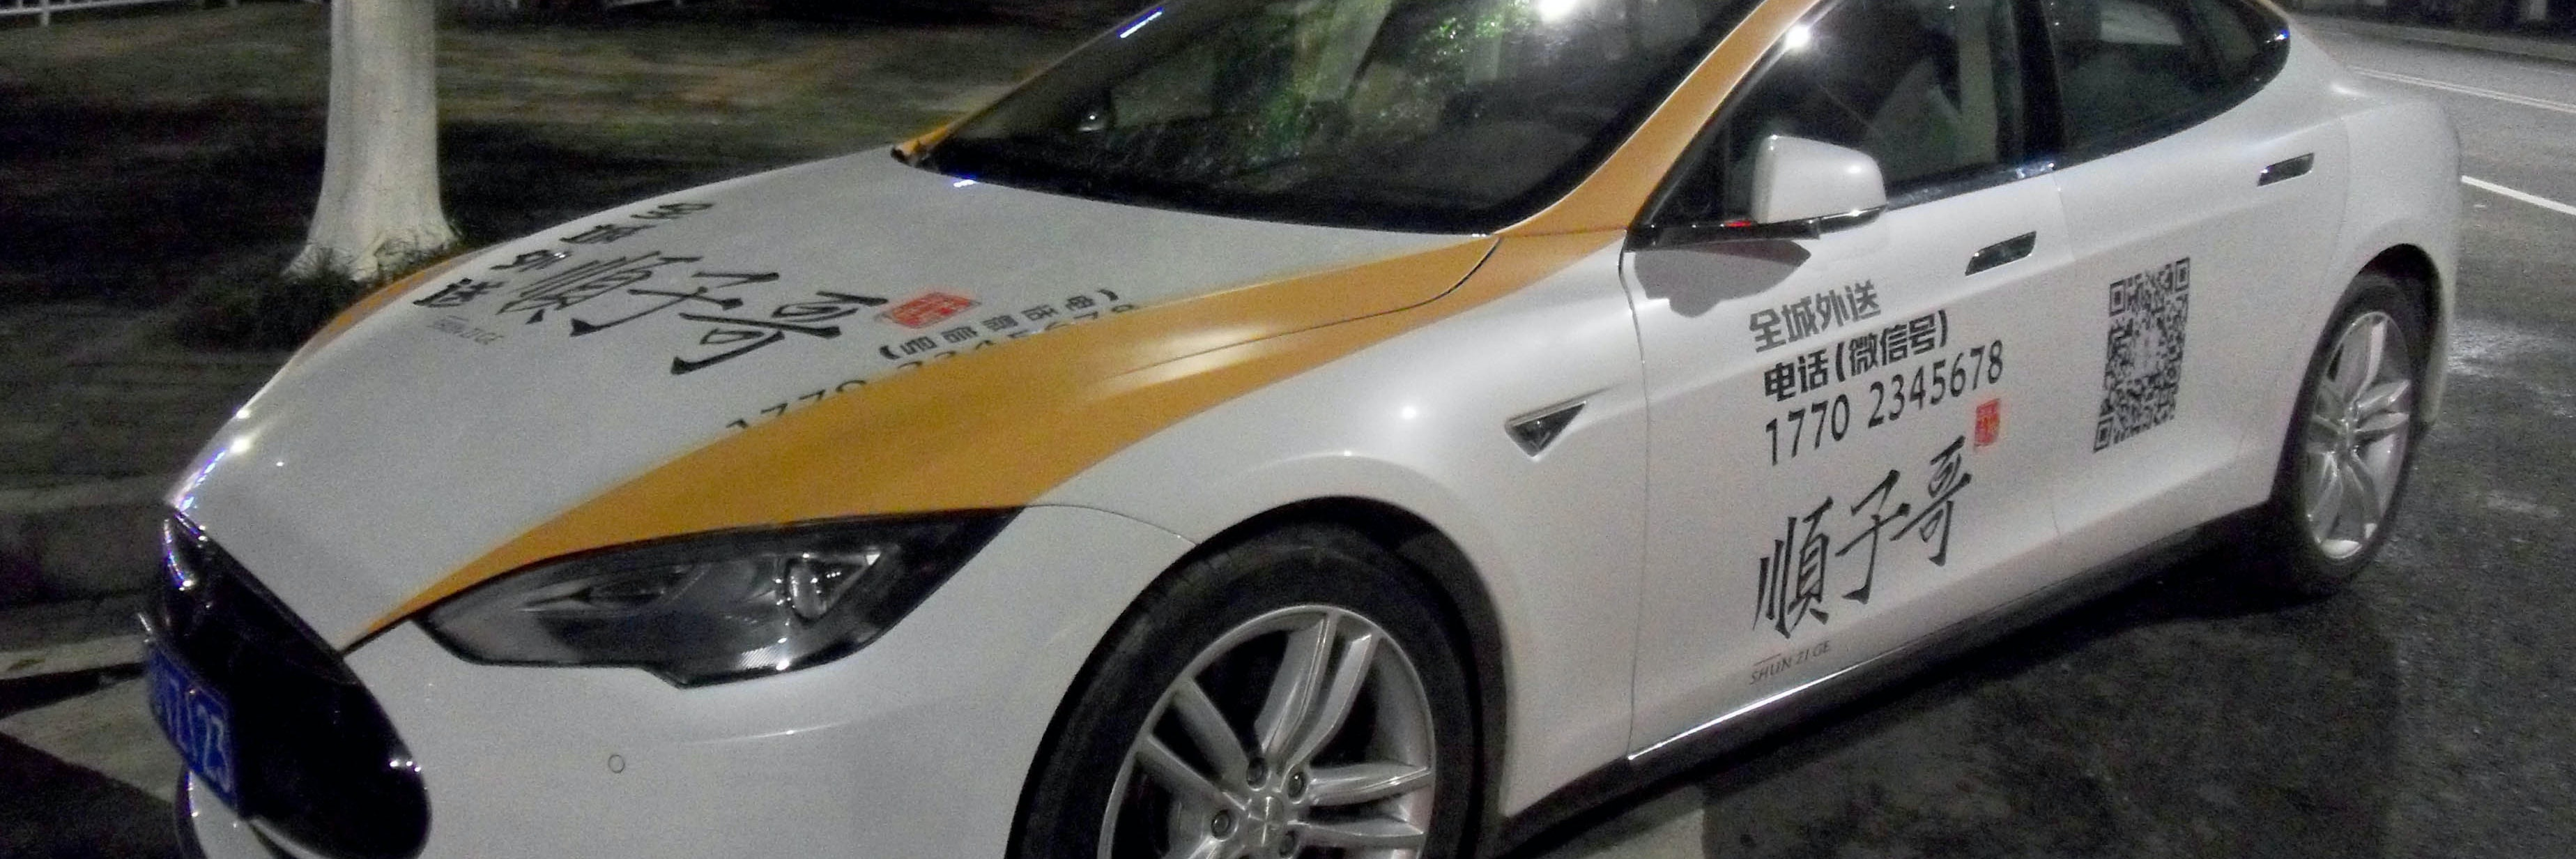 CHONGQING, CHINA - NOVEMBER 27:  (CHINA OUT) A Tesla motor for fast food delivery is seen on November 27, 2014 in Chongqing, China. Tesla Motors, produced by Amercia Tesla Motors, Inc. are cars with new energy and included such car models as Tesla Roadster,Tesla Model S and Tesla Model X. It was said that the Tesla motor in Chongqing did its fast food delivery all around the city for free if your paid for your meals far more 100 yuan (about 16.2 USD).  (Photo by VCG/VCG via Getty Images)